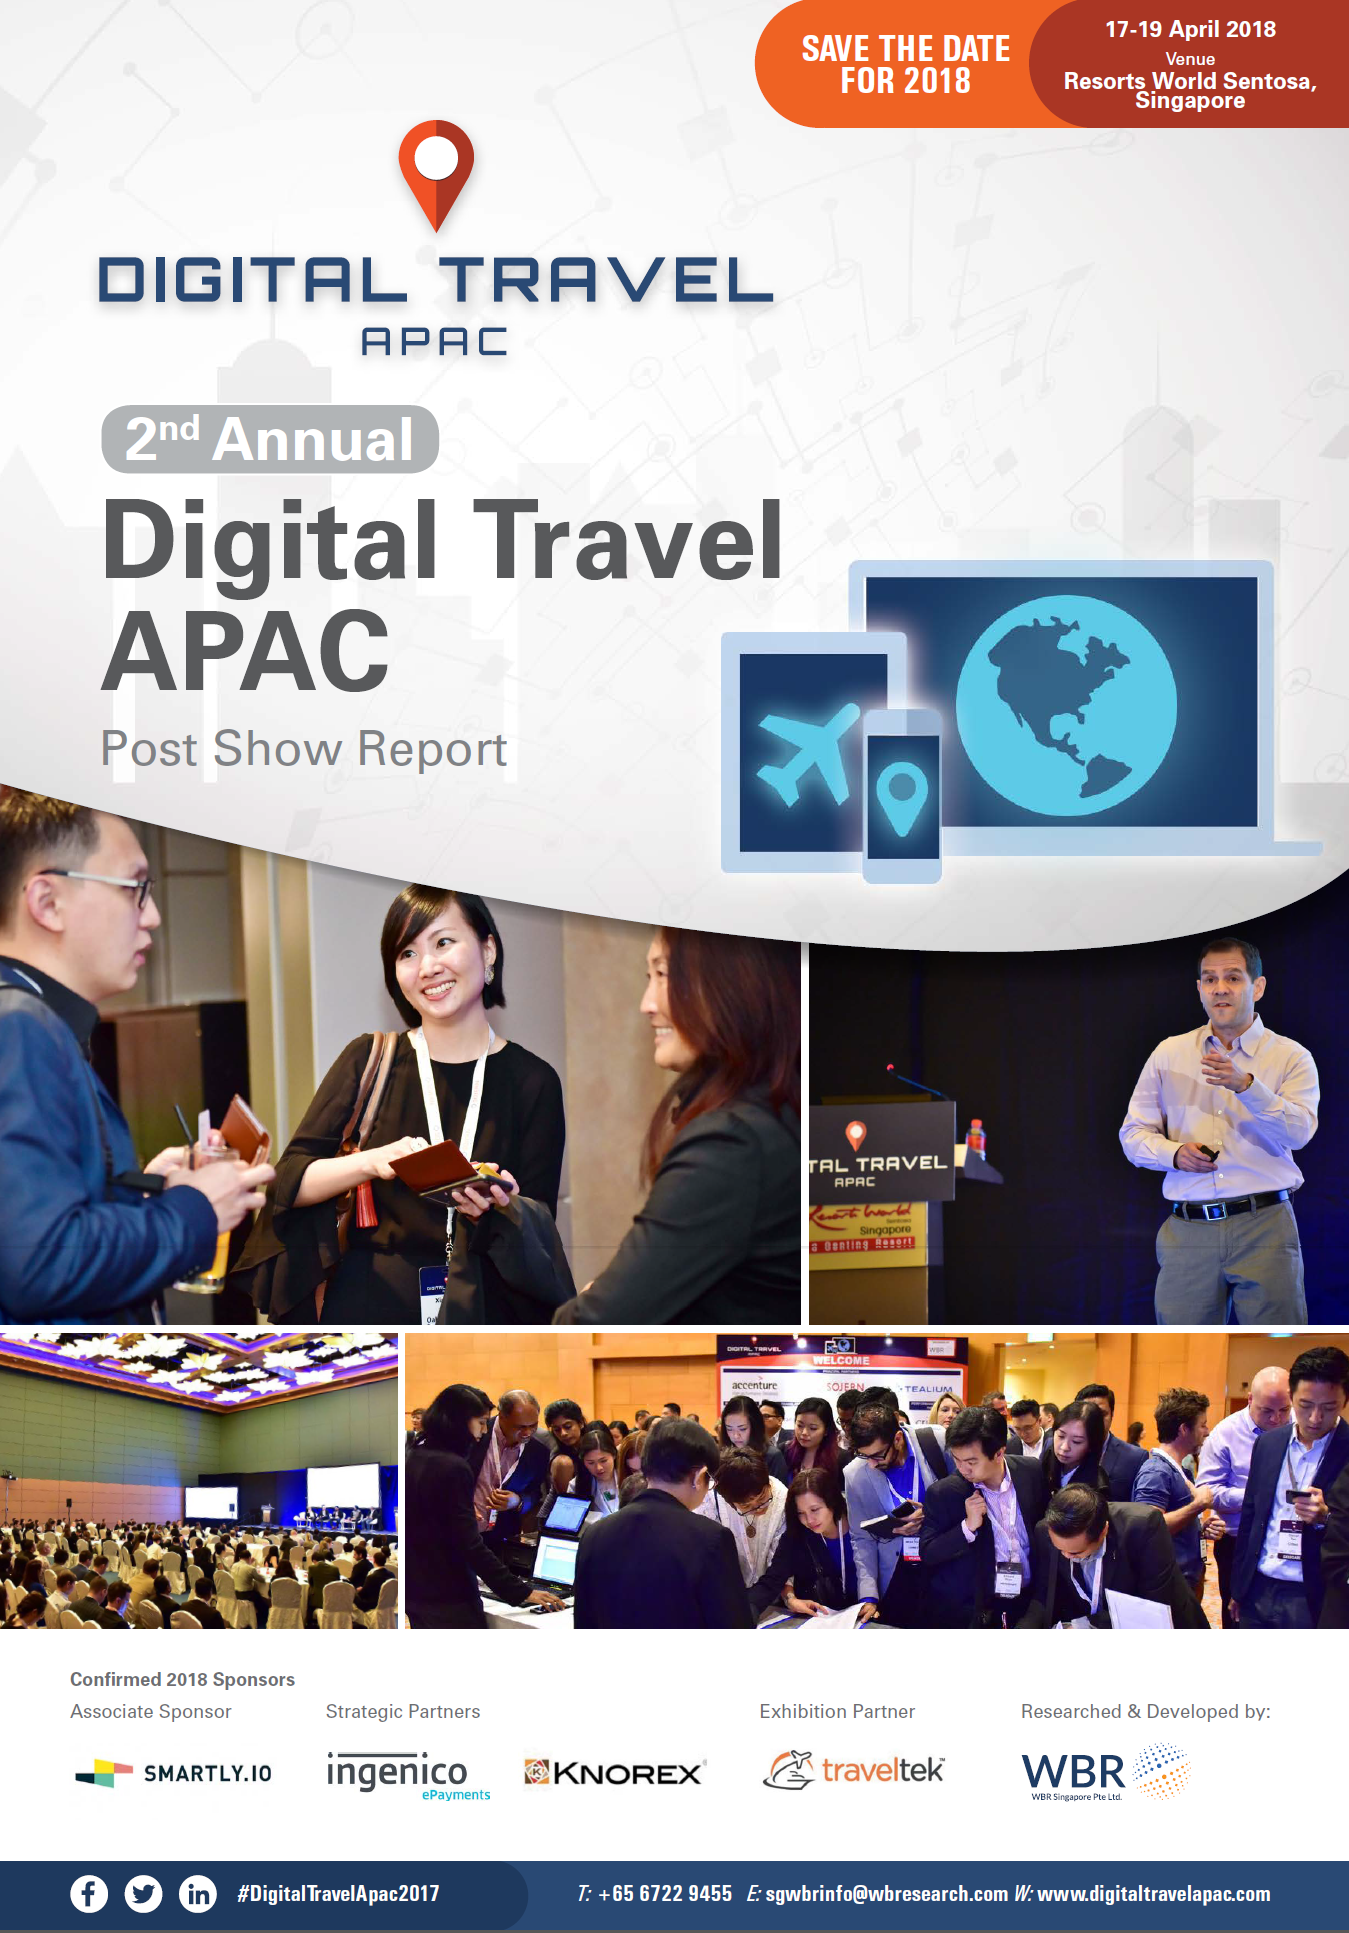 2nd Annual Digital Travel APAC Post Show Report